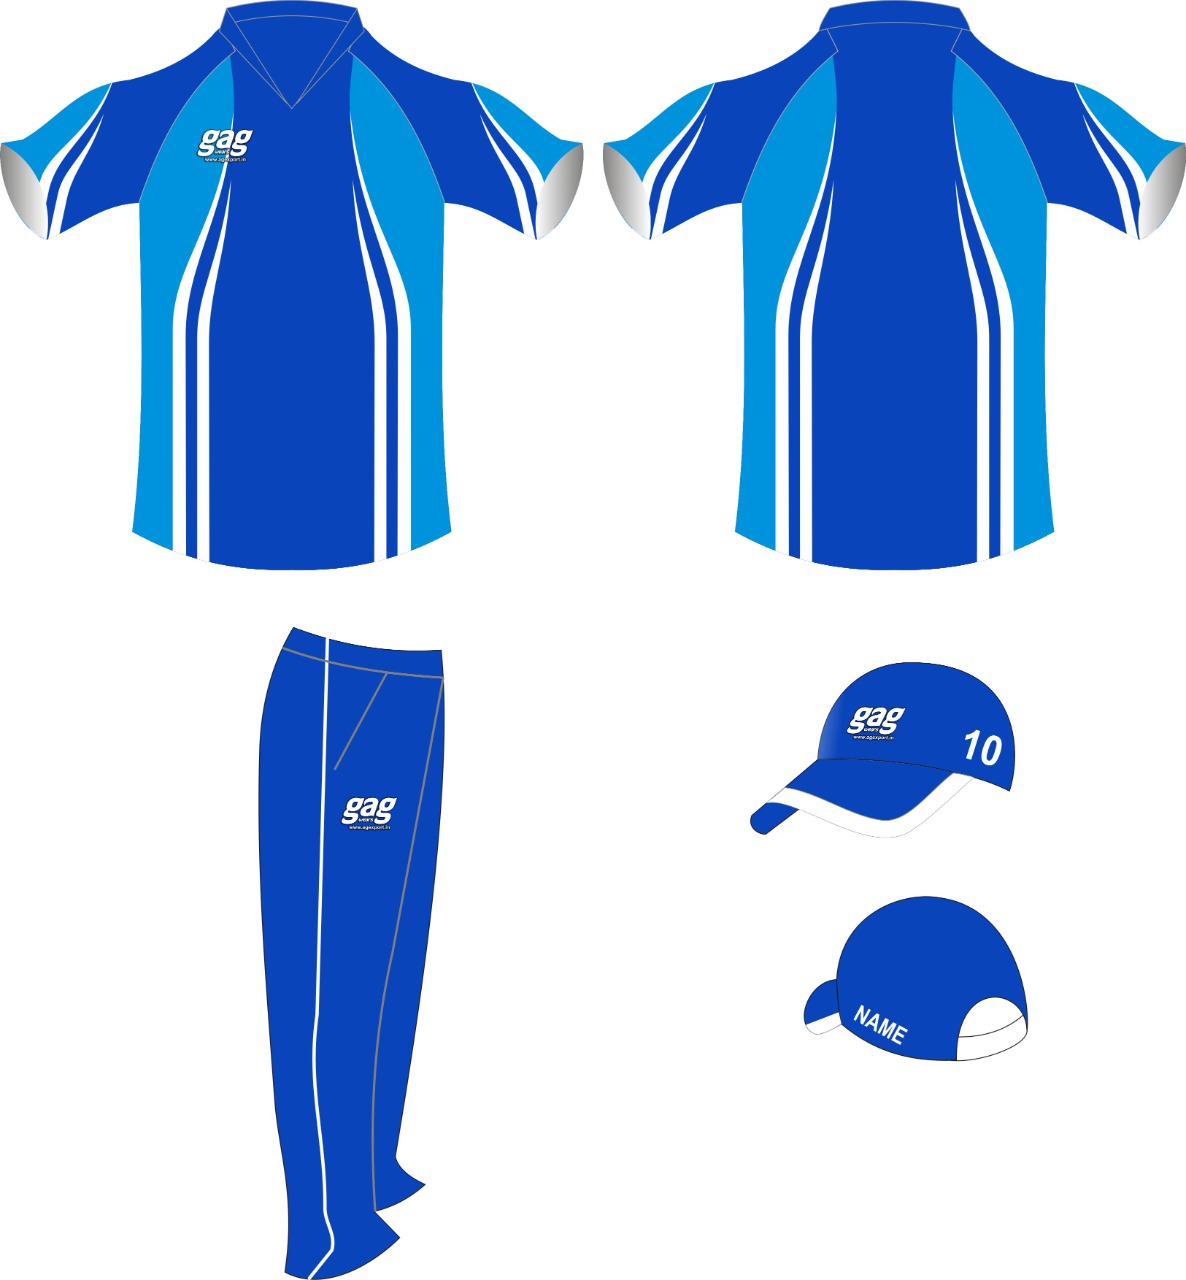 Mens Cricket Trousers Manufacturers in Jalandhar in Bahrain